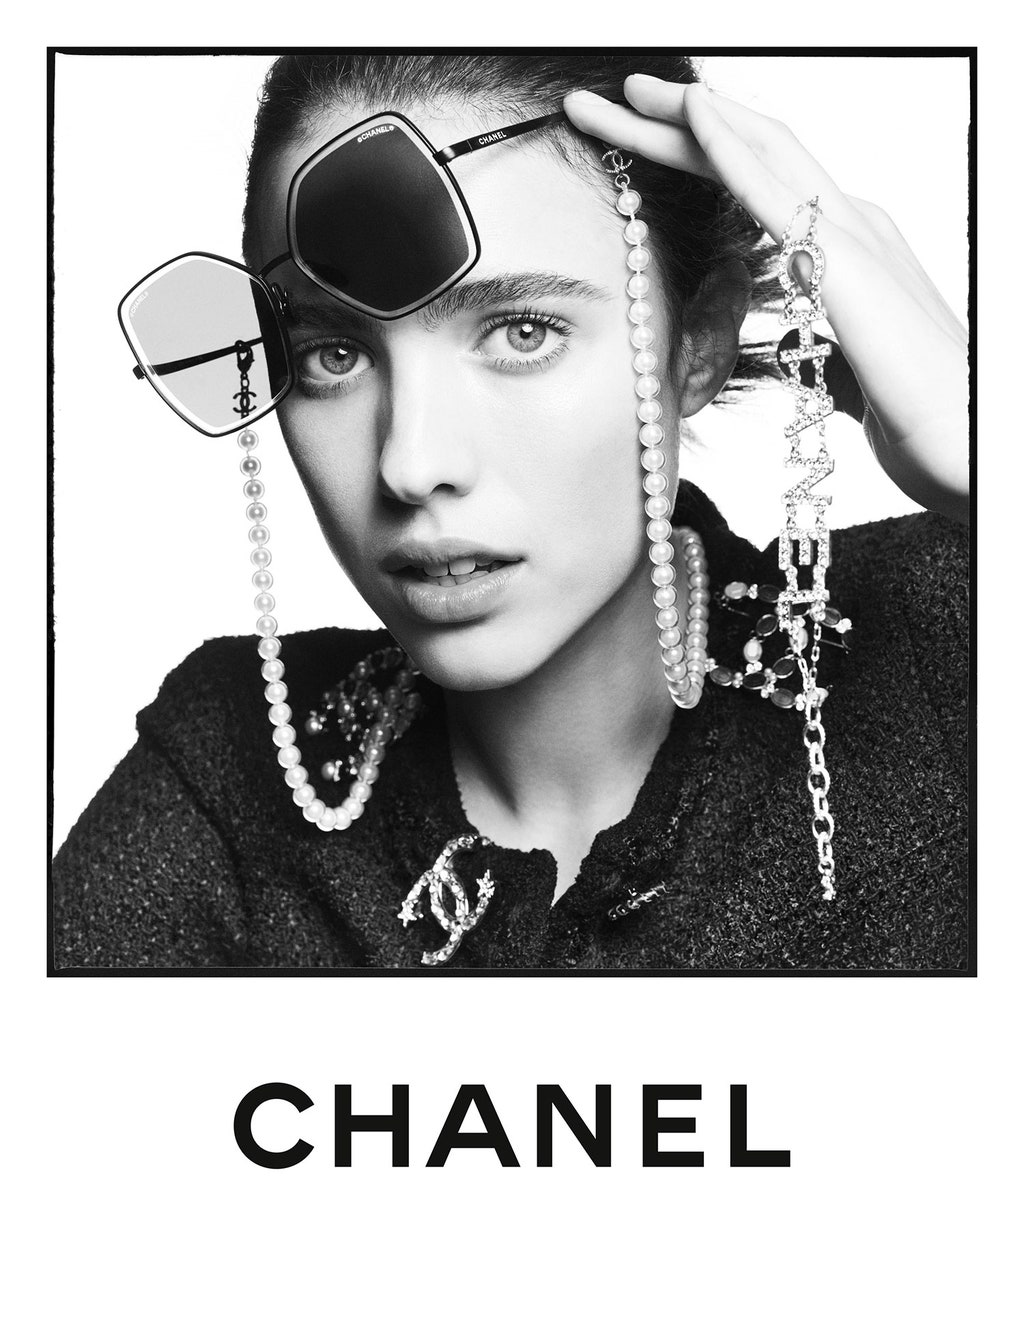 Chanel summer campaign 2020